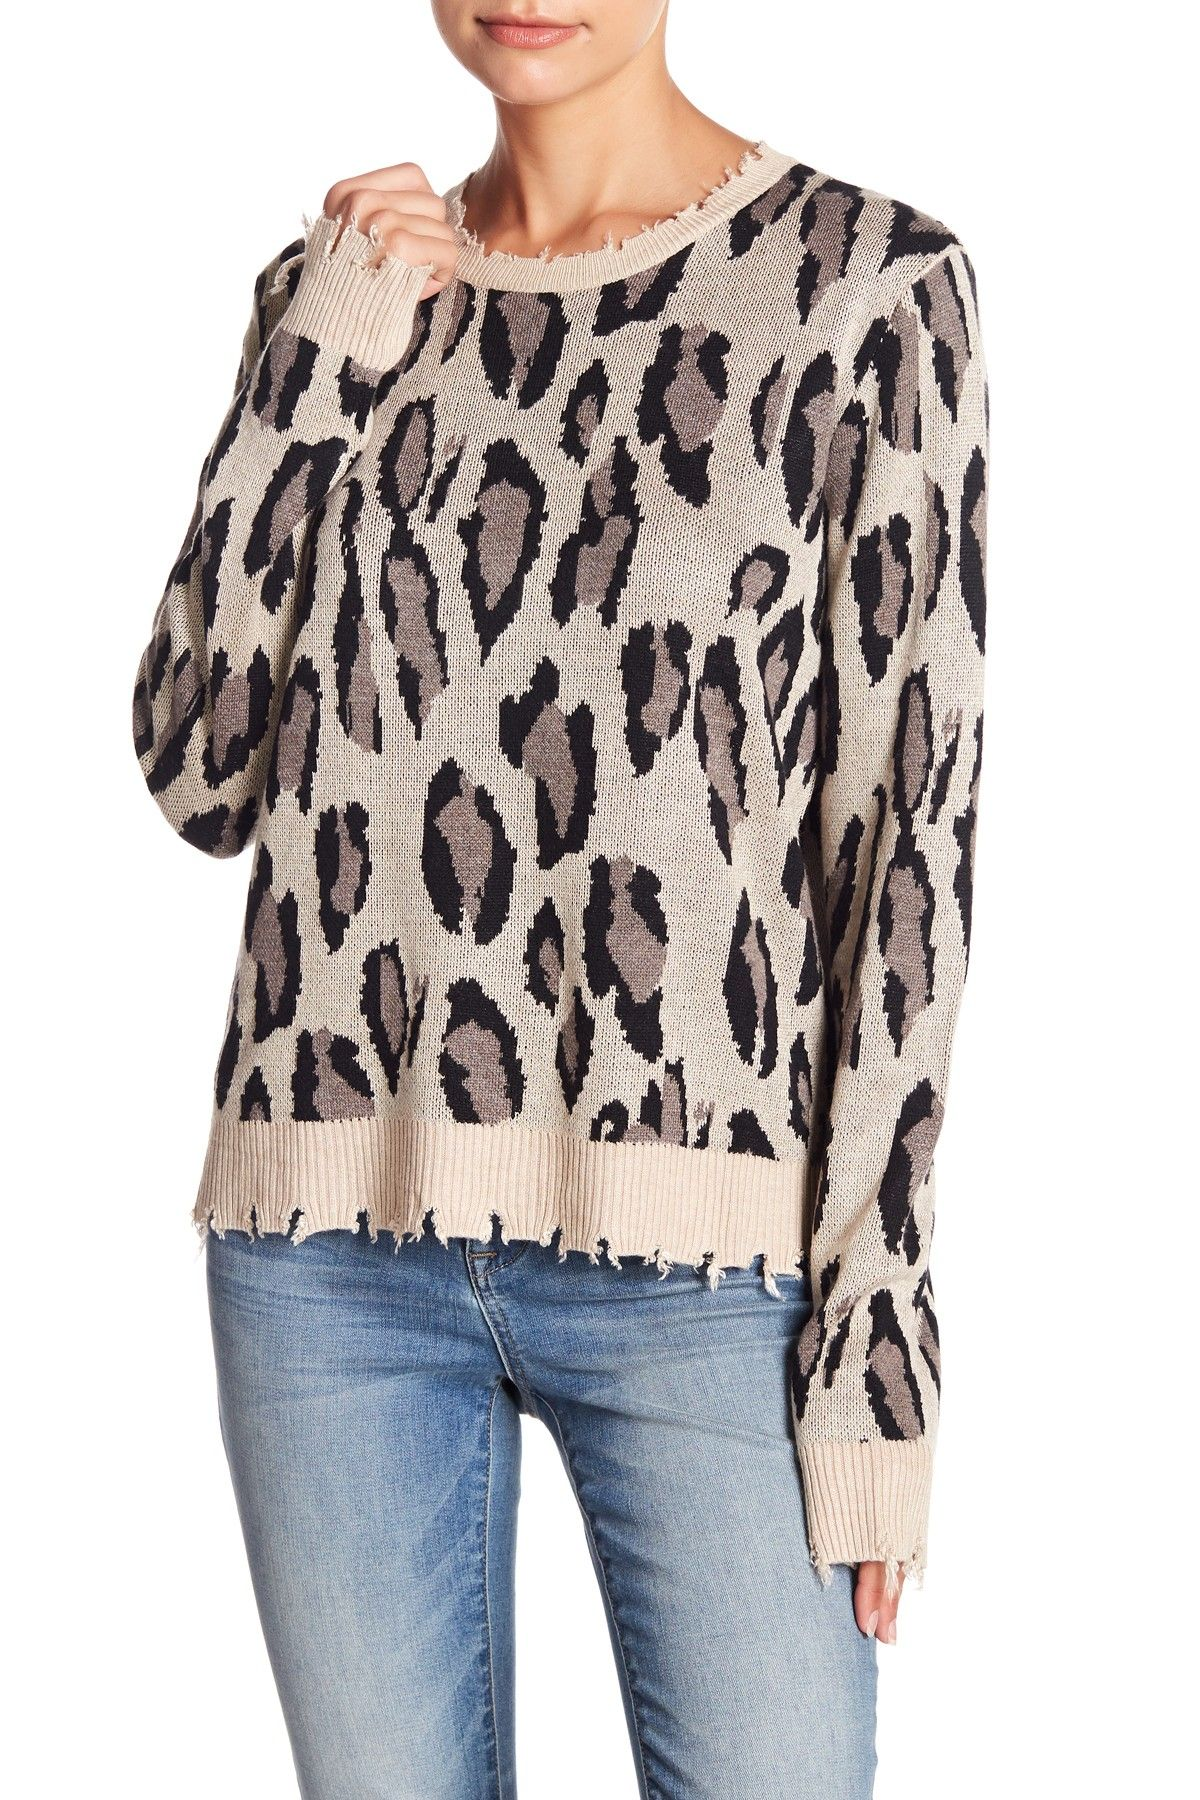 5761127e4de0 Distressed Leopard Print Sweater   Products   Fashion, Sweaters, Blouse